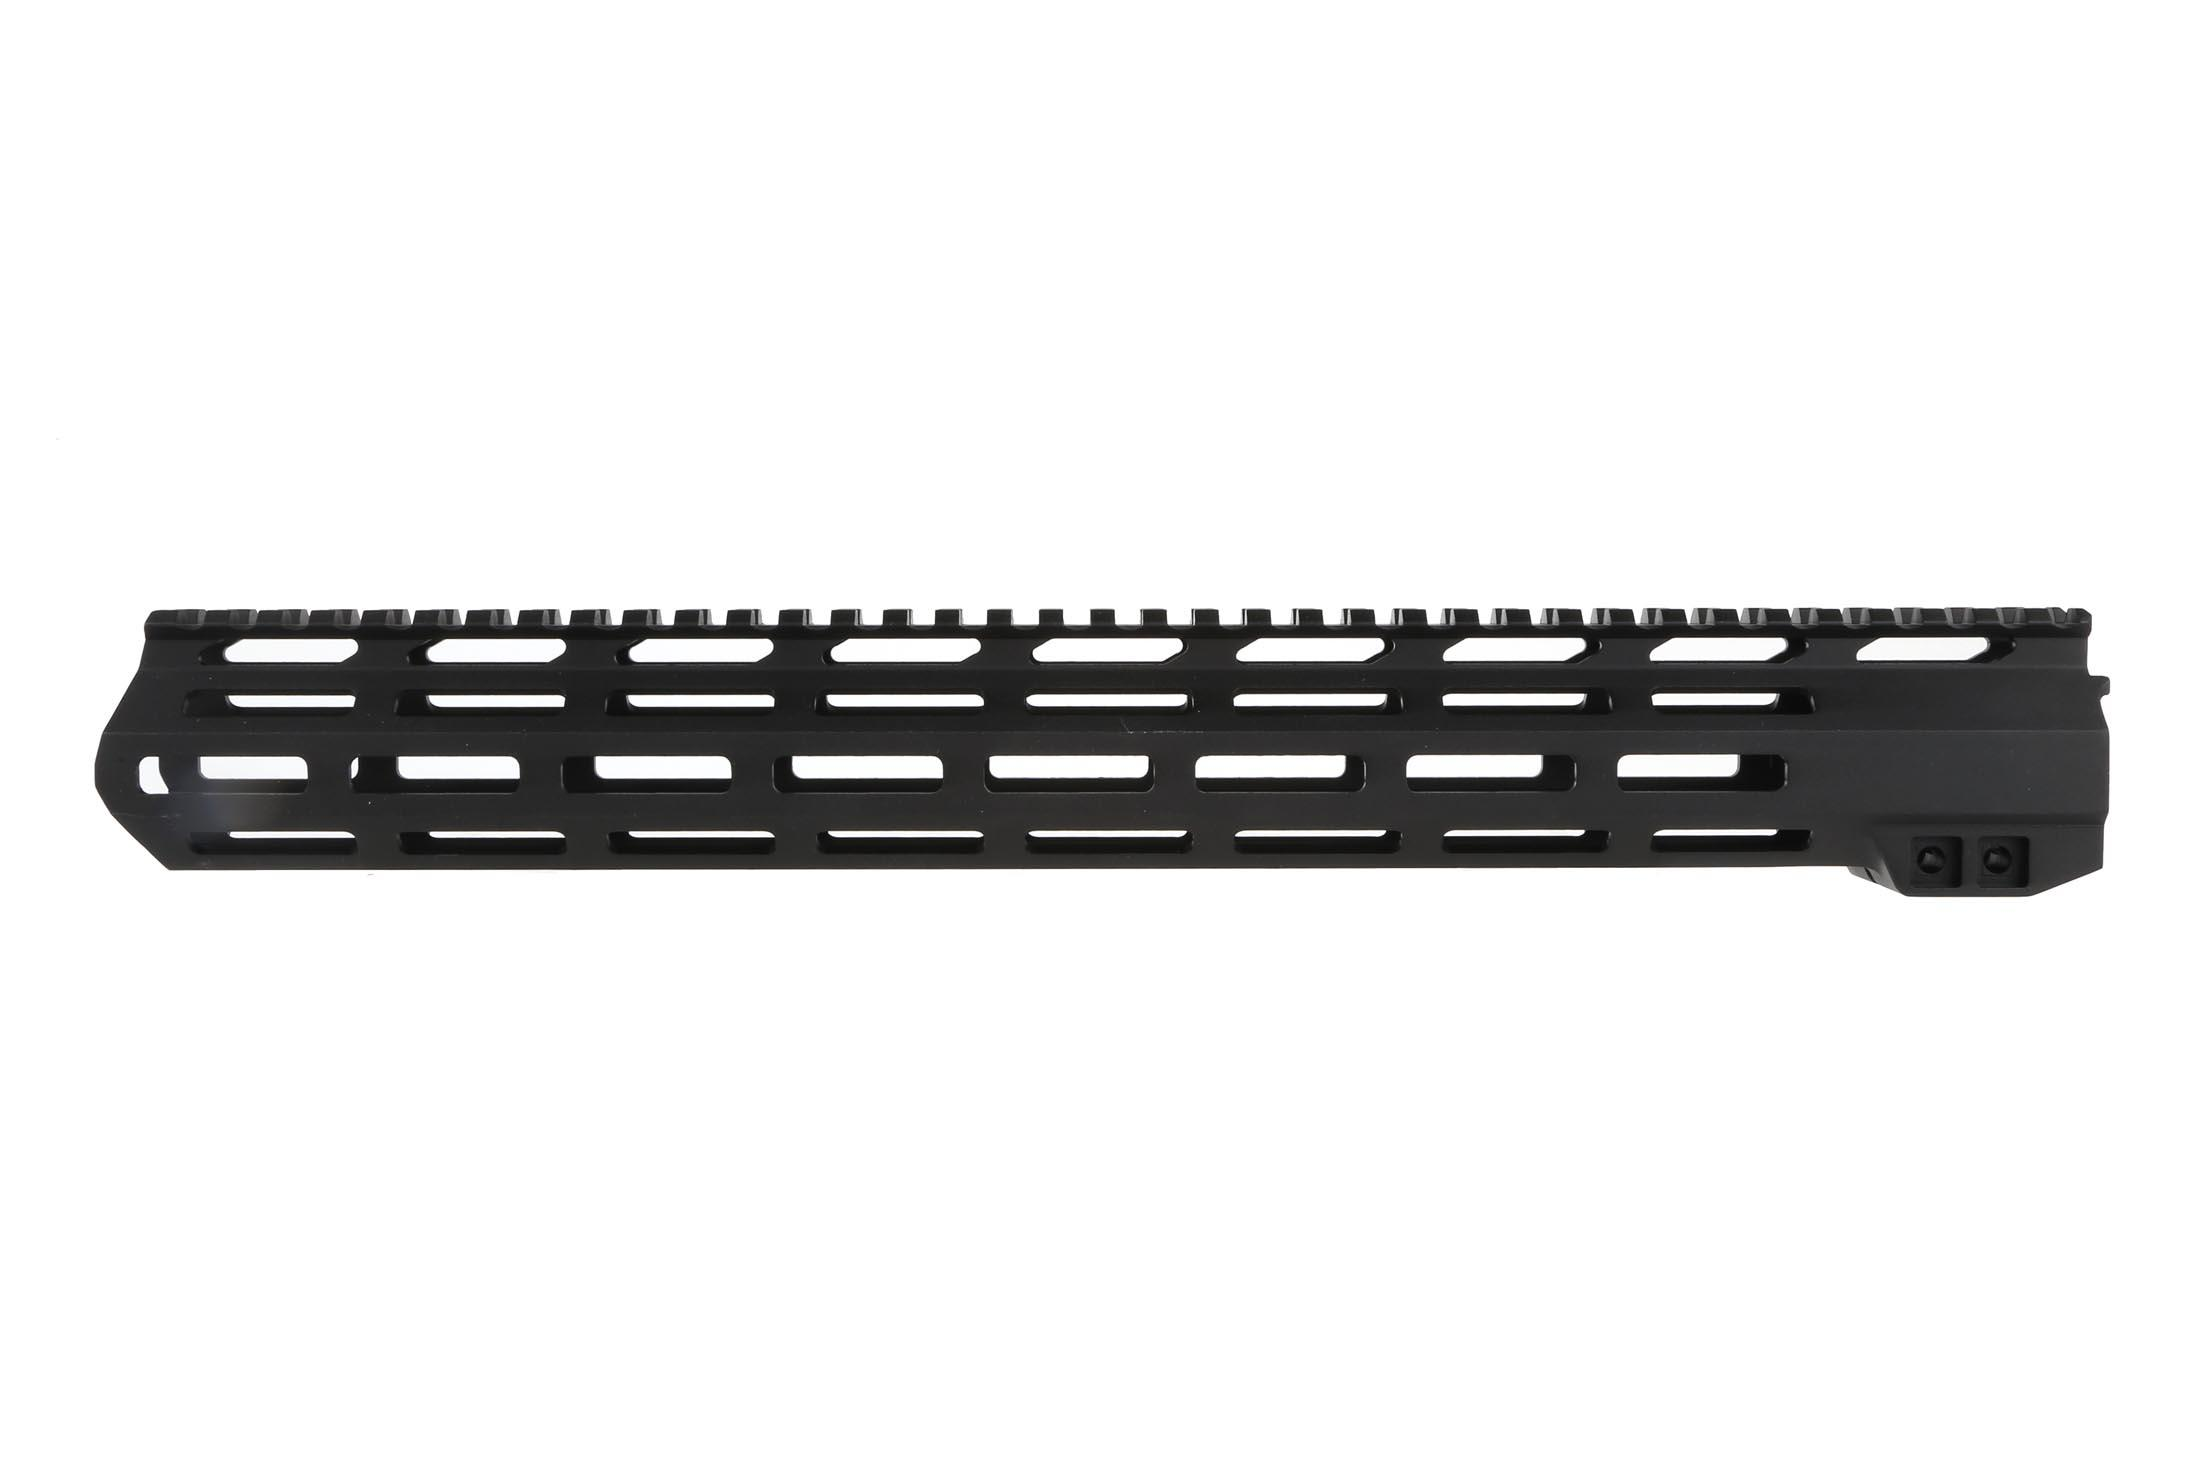 The Aimsports AR-15 handguard features a black anodized finish